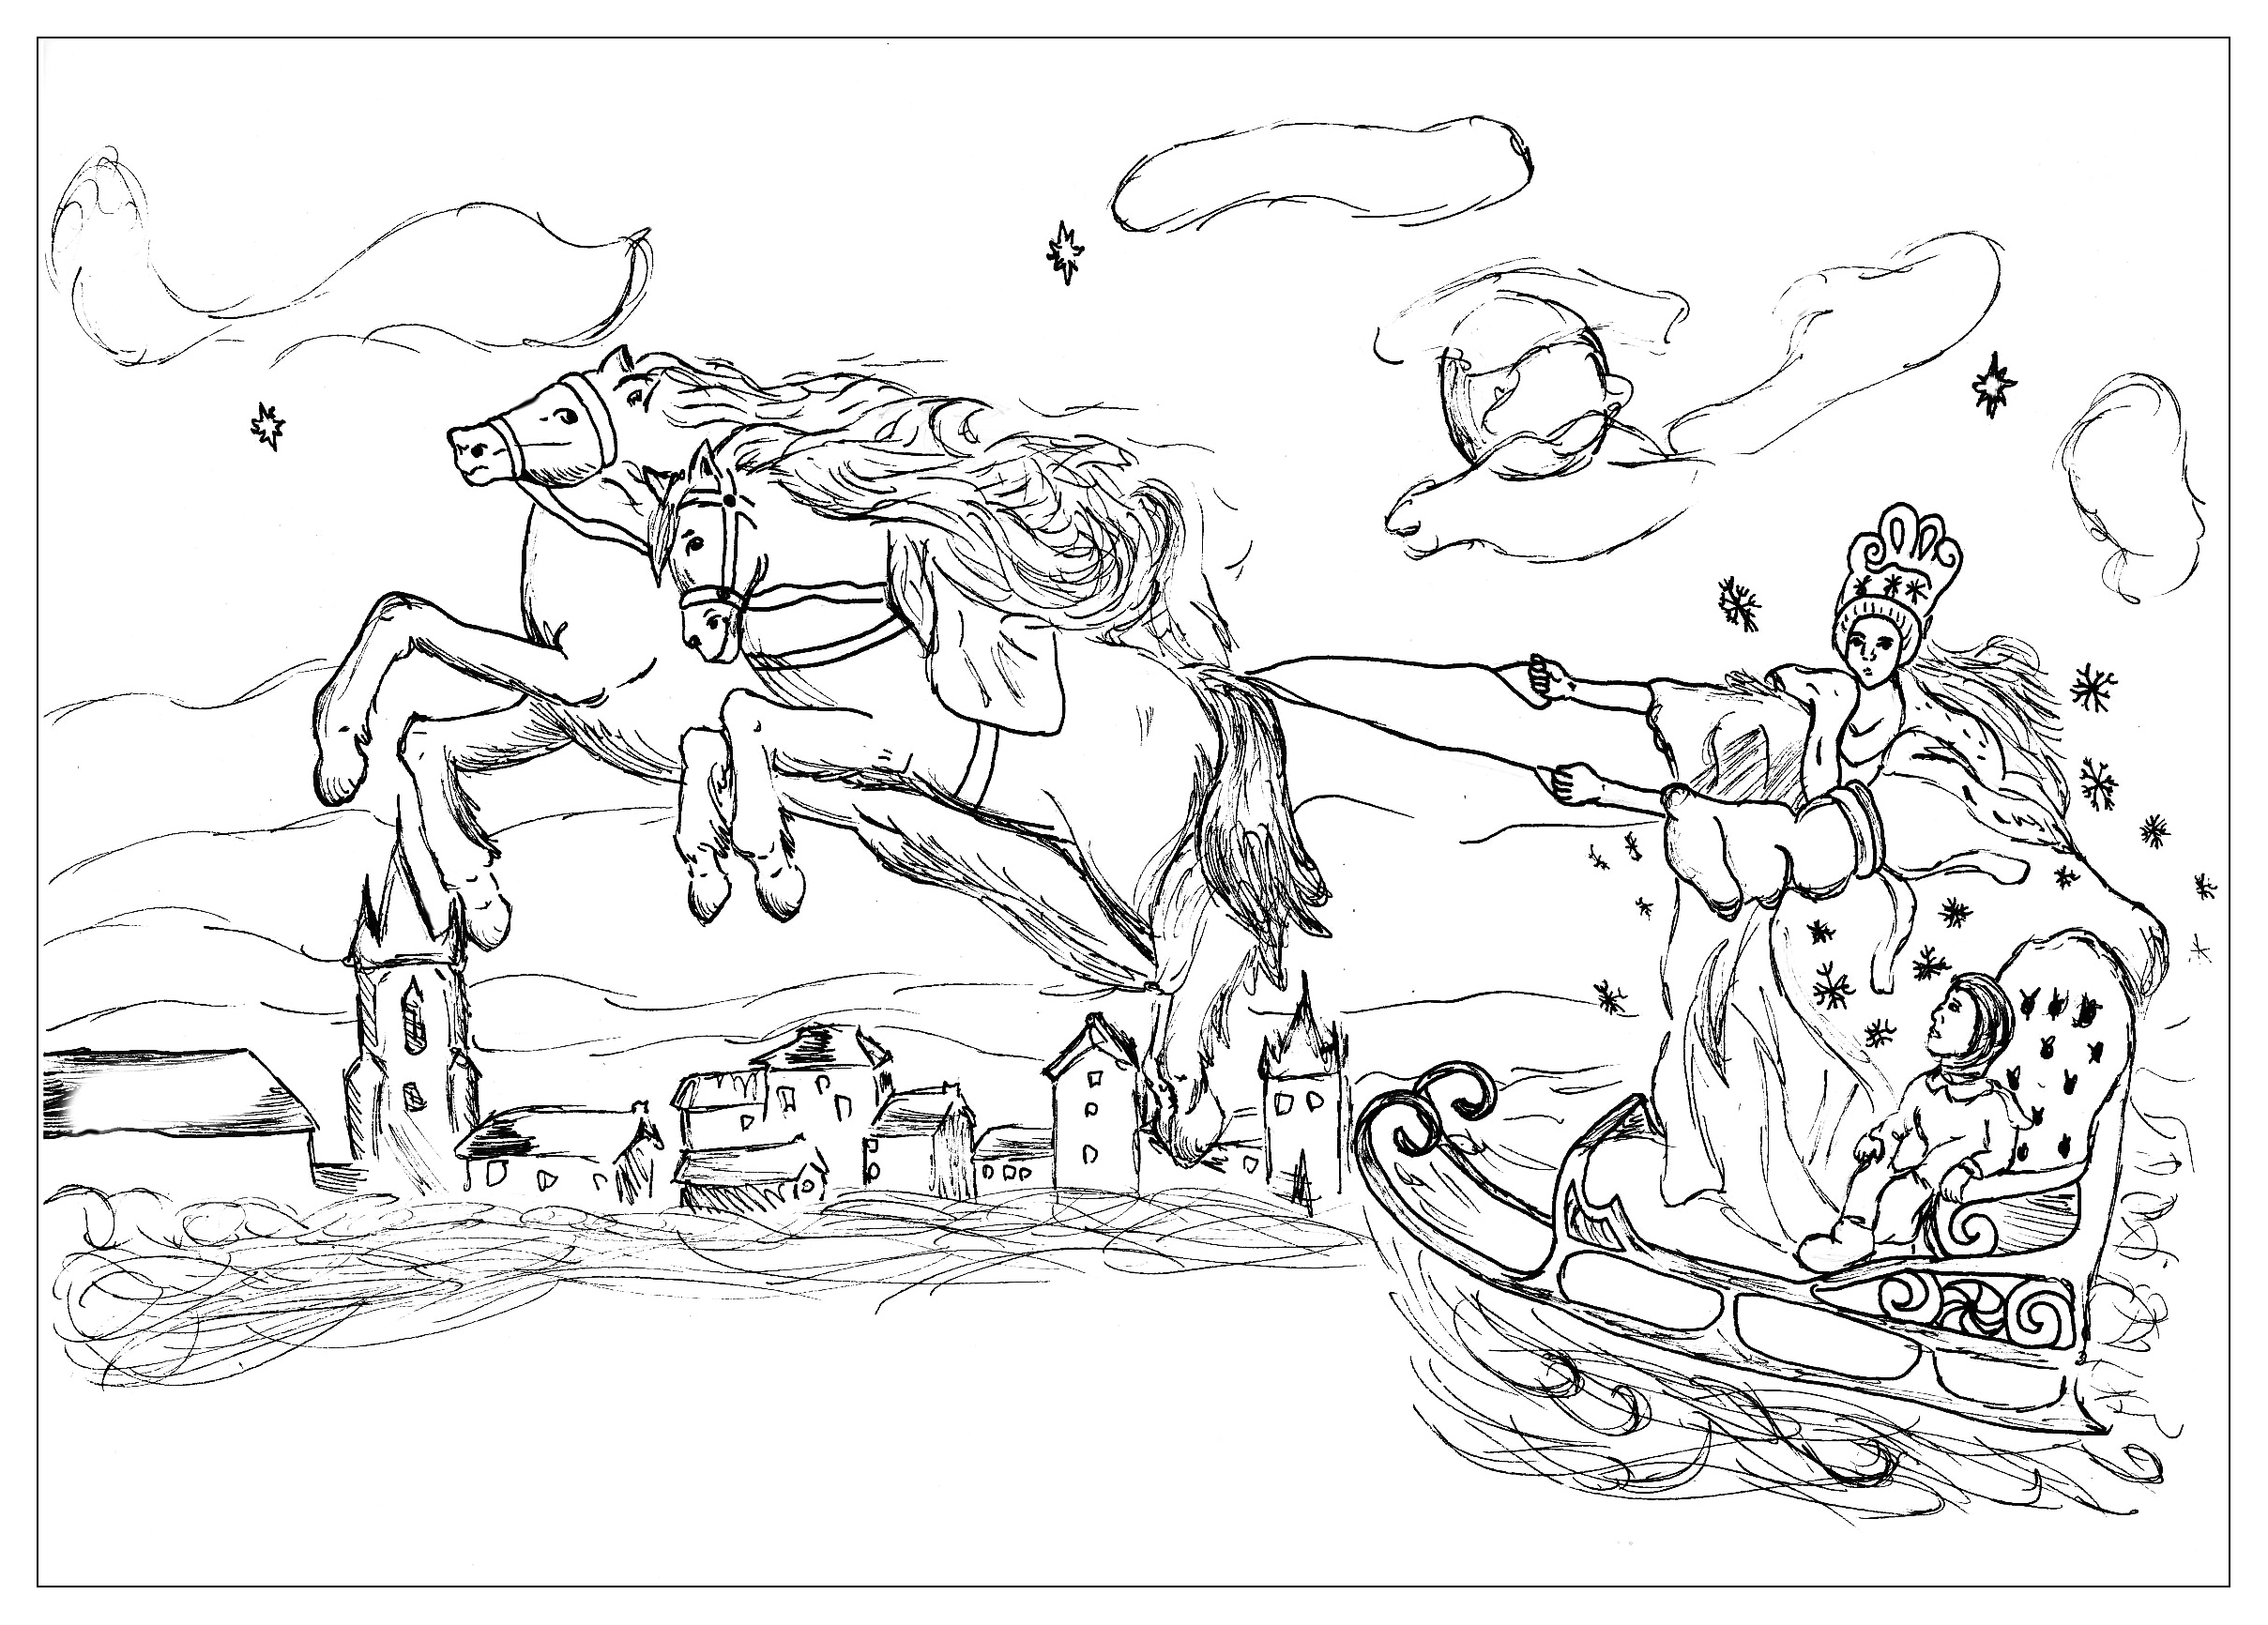 Simple Tales coloring page to print and color for free